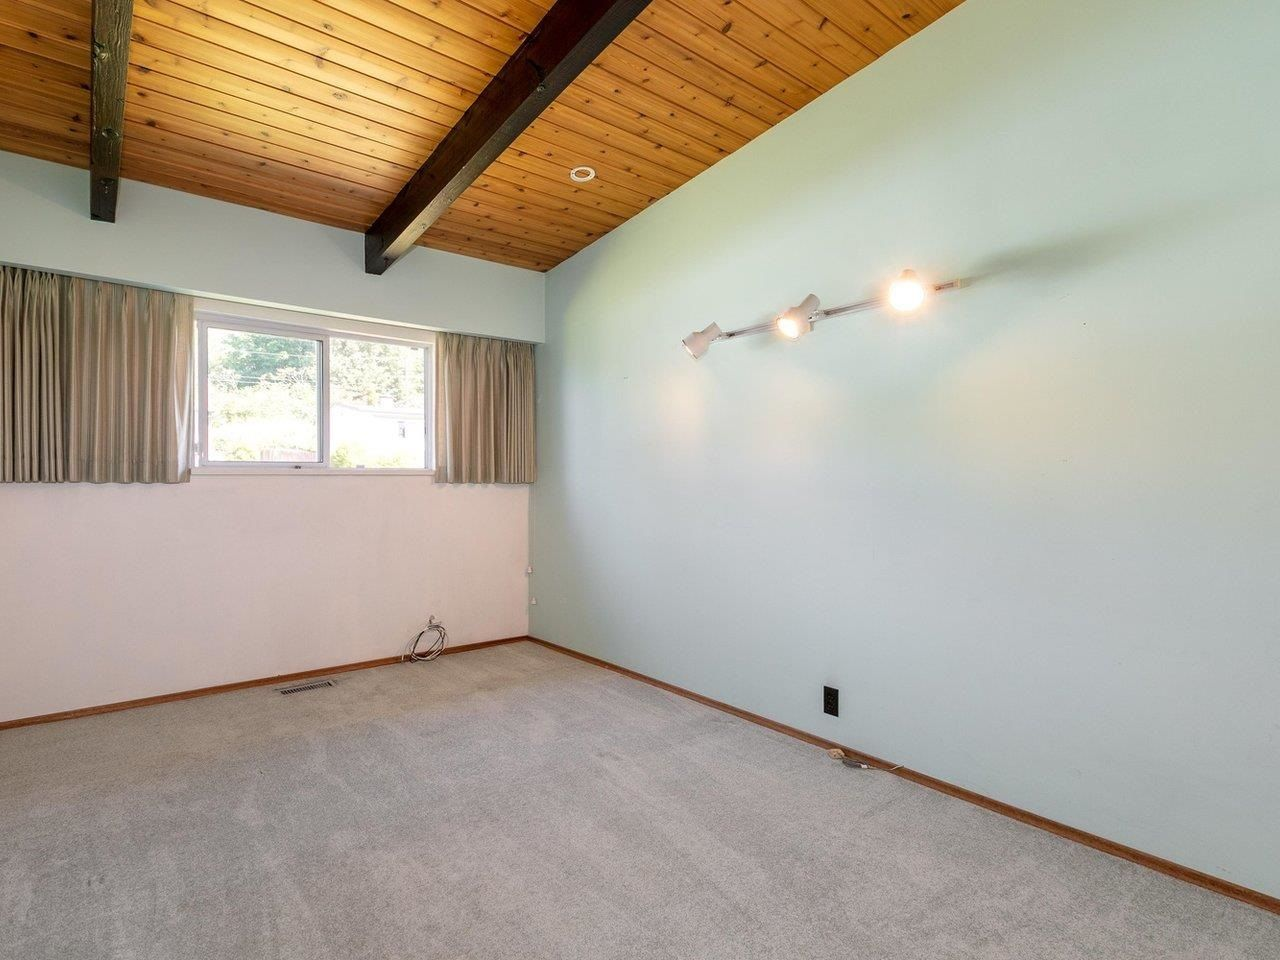 Photo 12: Photos: 6860 HYCREST Drive in Burnaby: Montecito House for sale (Burnaby North)  : MLS®# R2594917